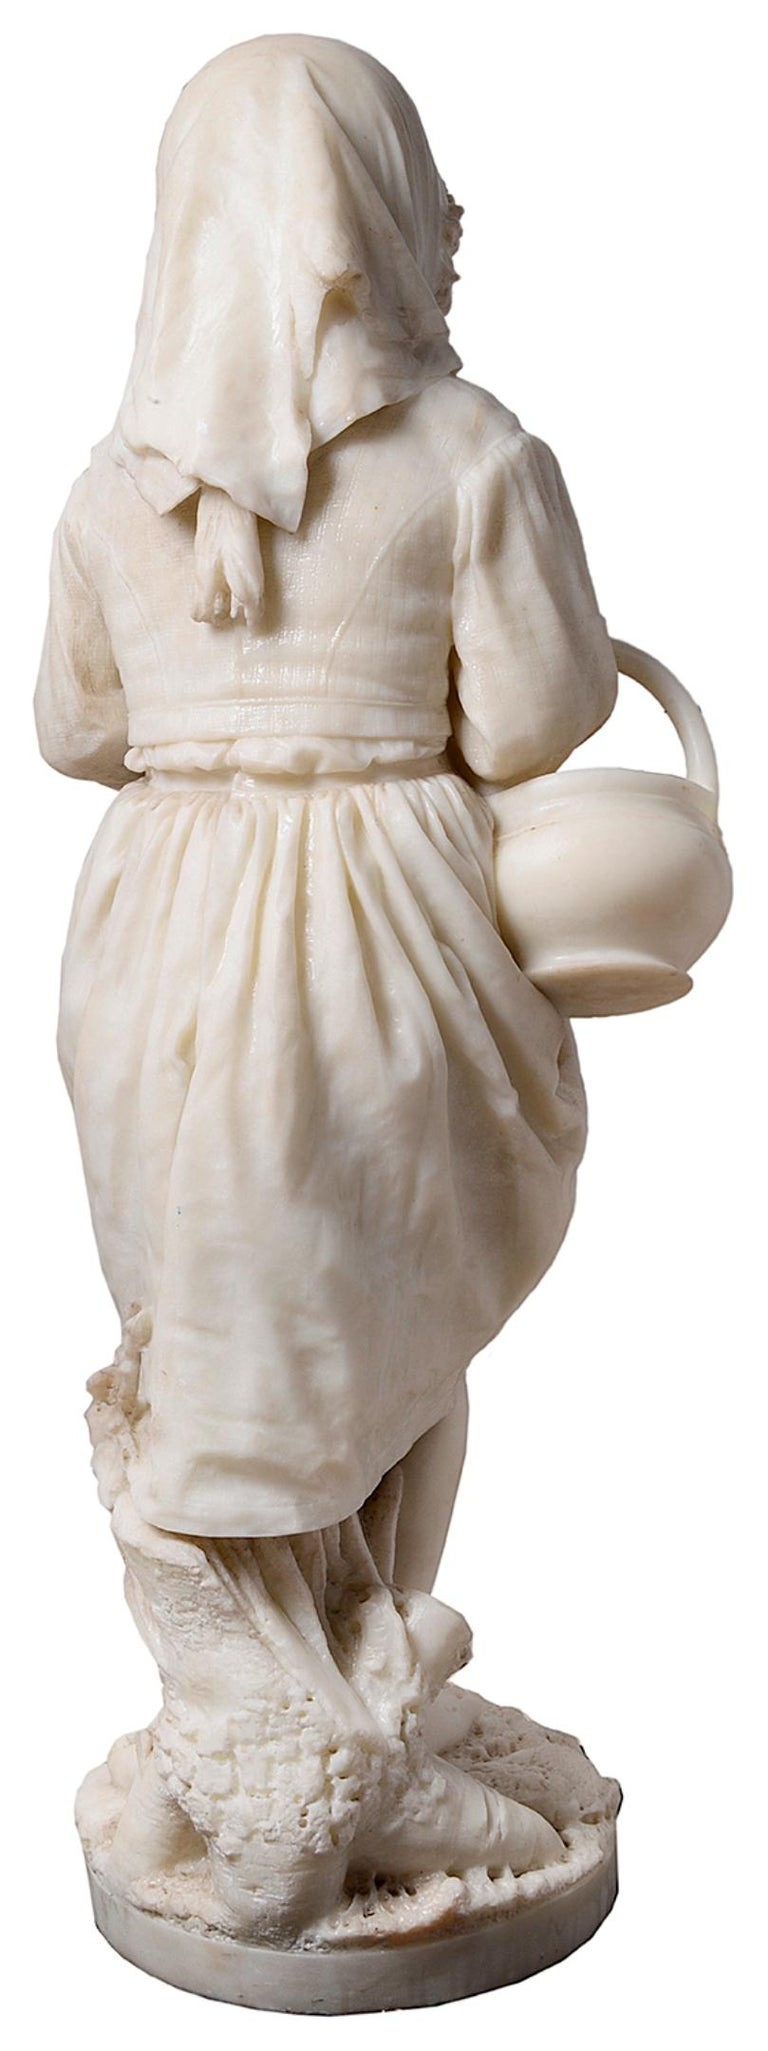 Hand-Carved 19th Century Italian Marble Statue of Gypsy Girl, by Prof. a. Cambi For Sale